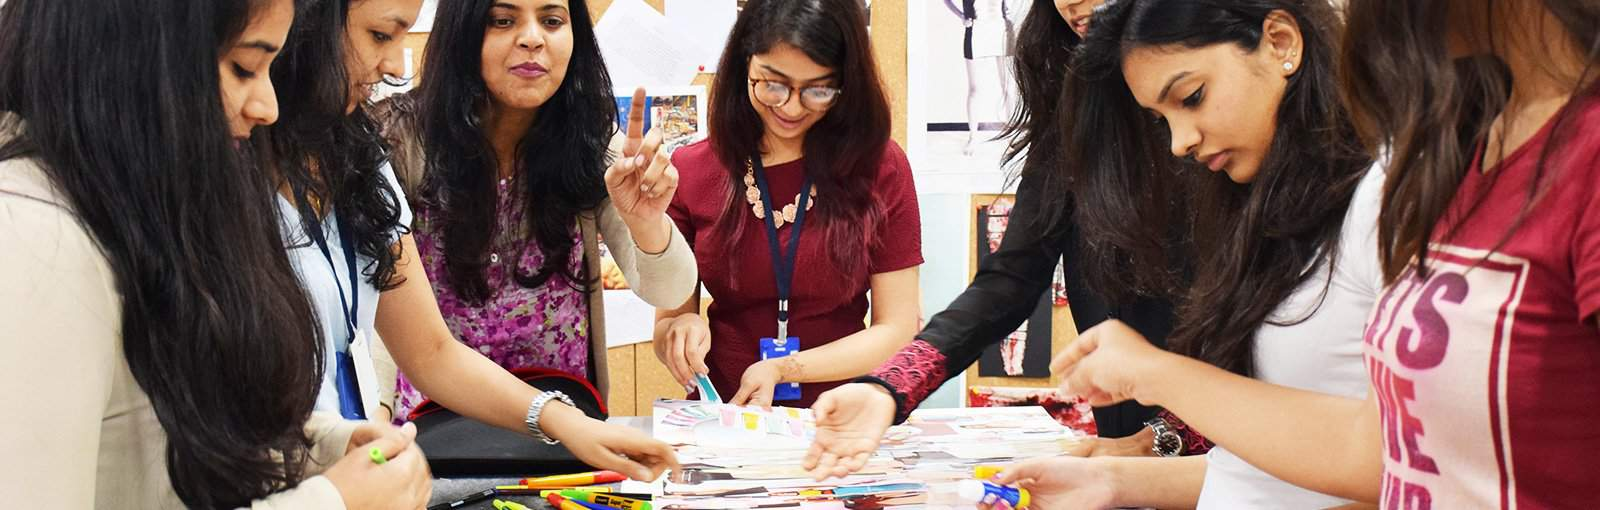 Vogue Institute Of Art And Design Bangalore Admission Process 2019